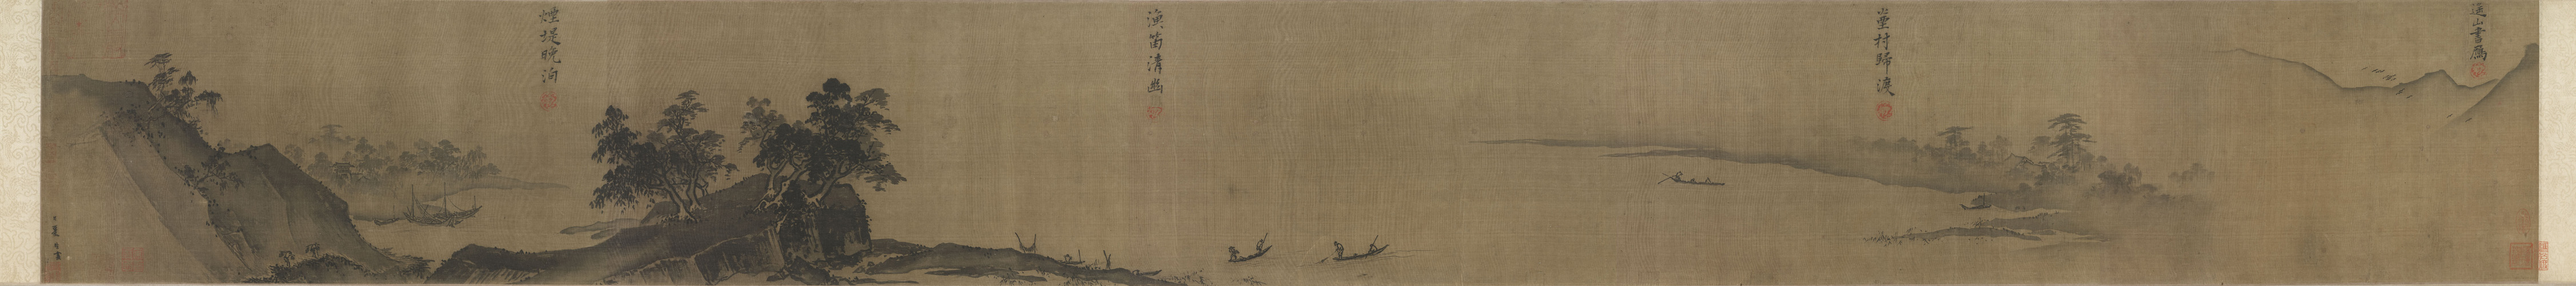 Xia Gui: Twelve Views of Landscape